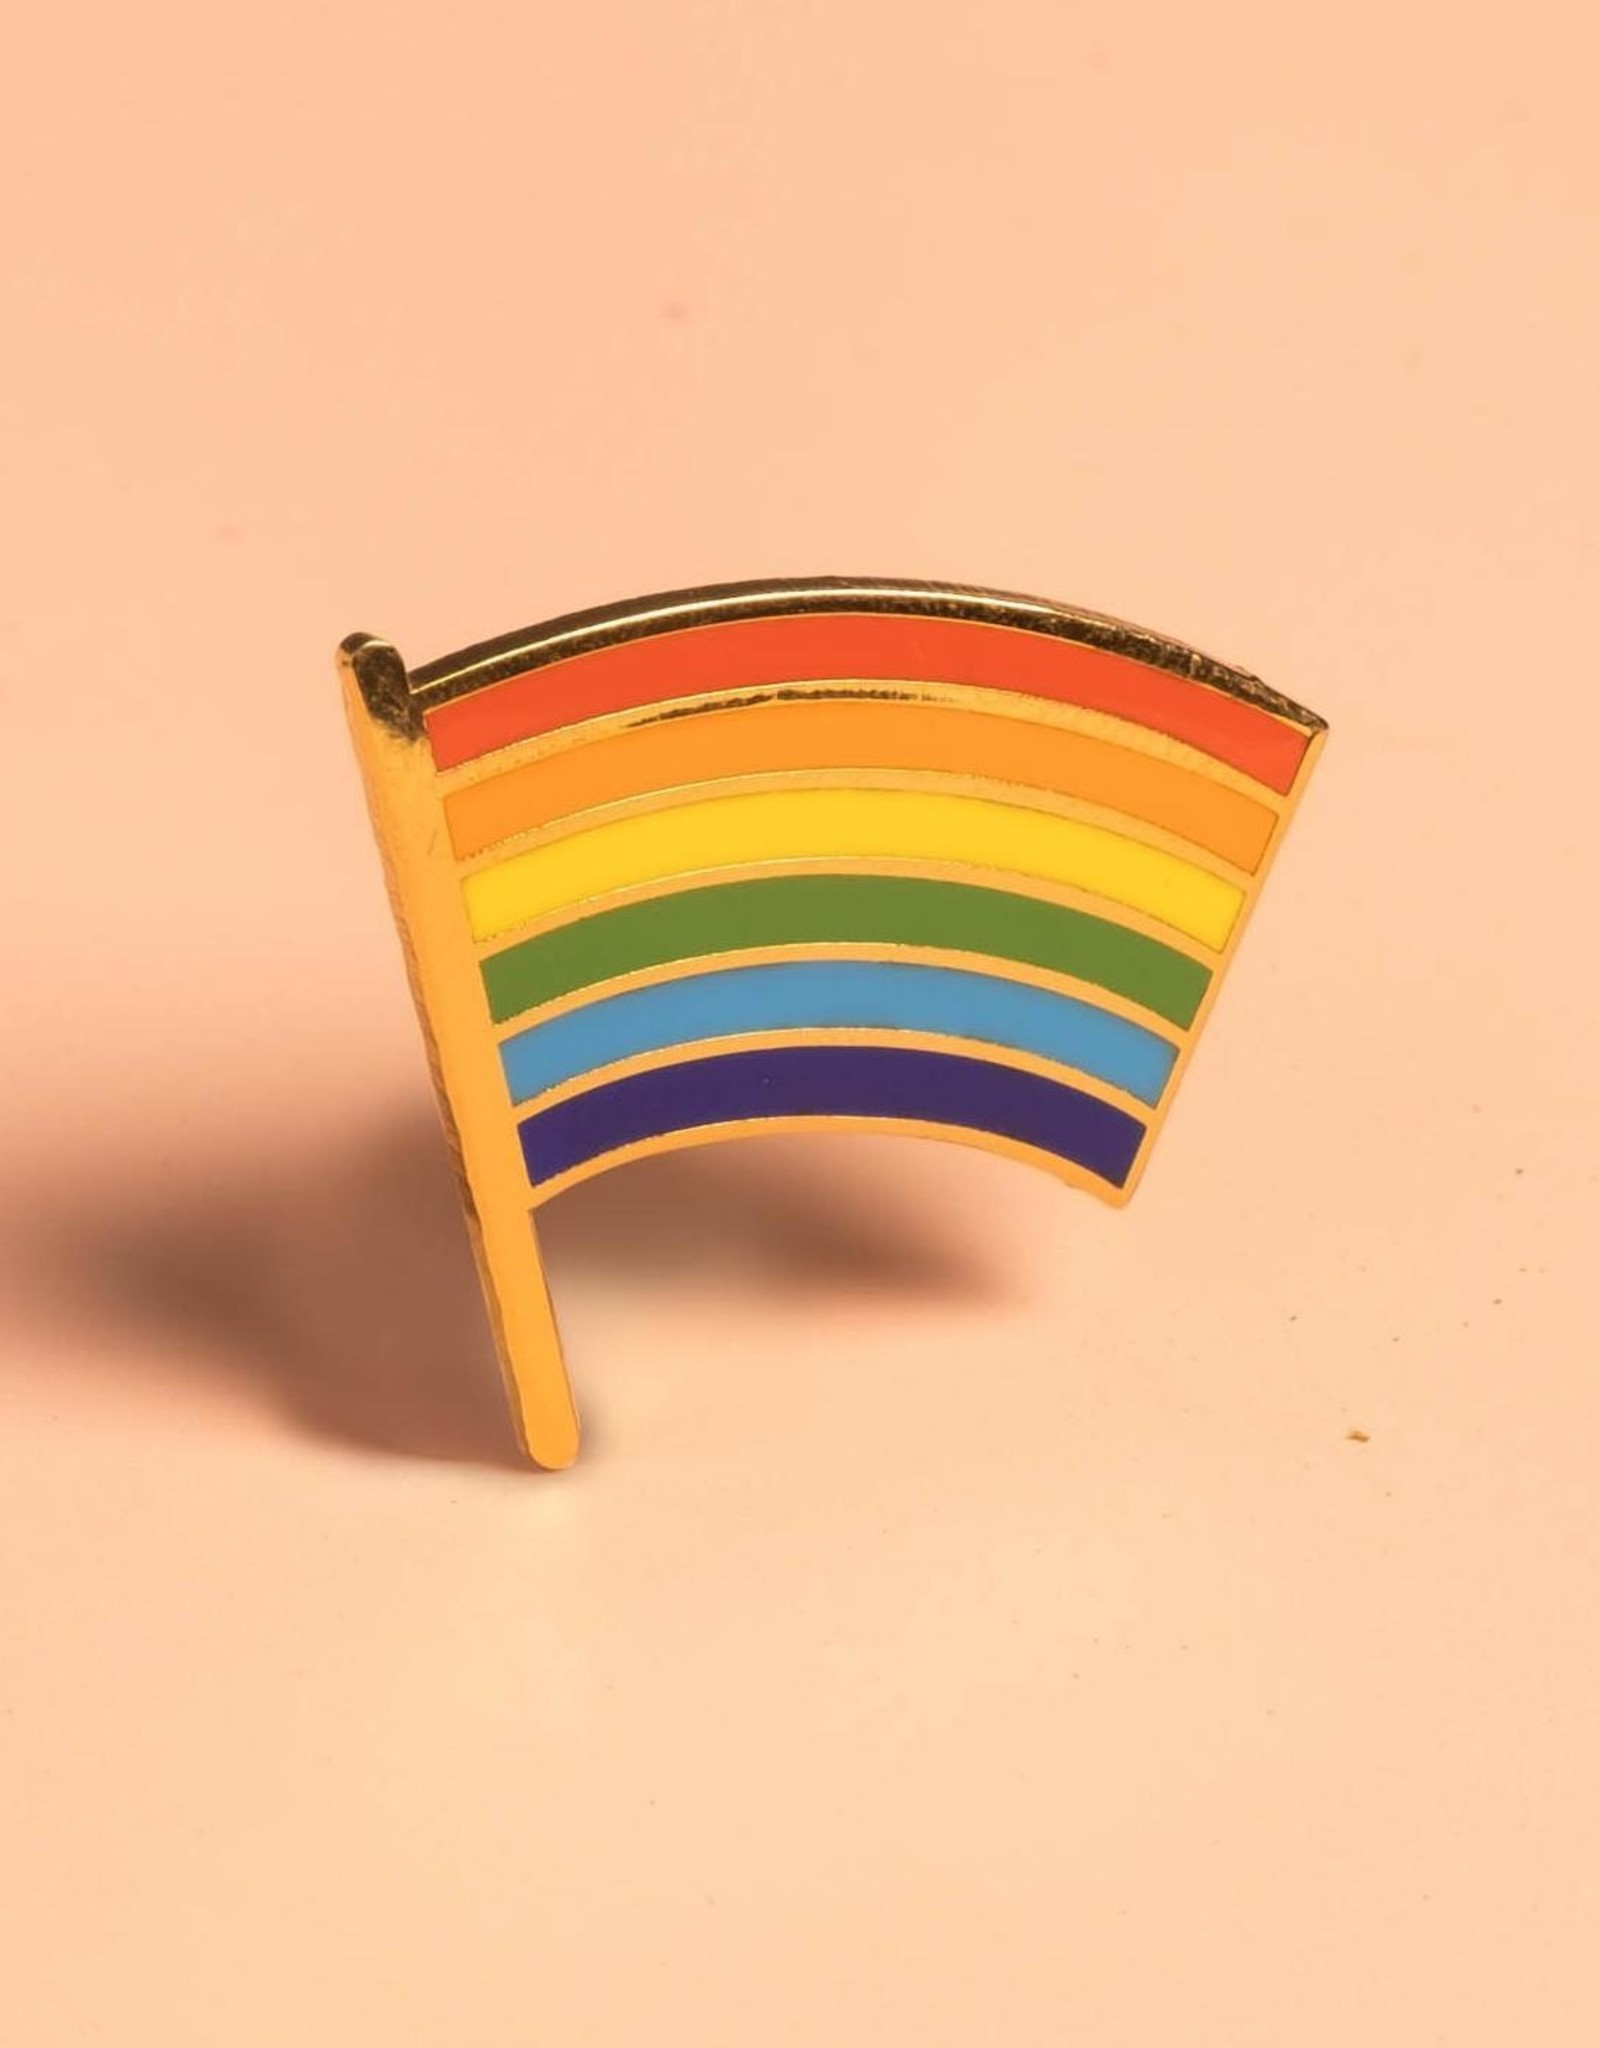 Dissent Pins Pride Flag Enamel Pin  - Dissent Pins